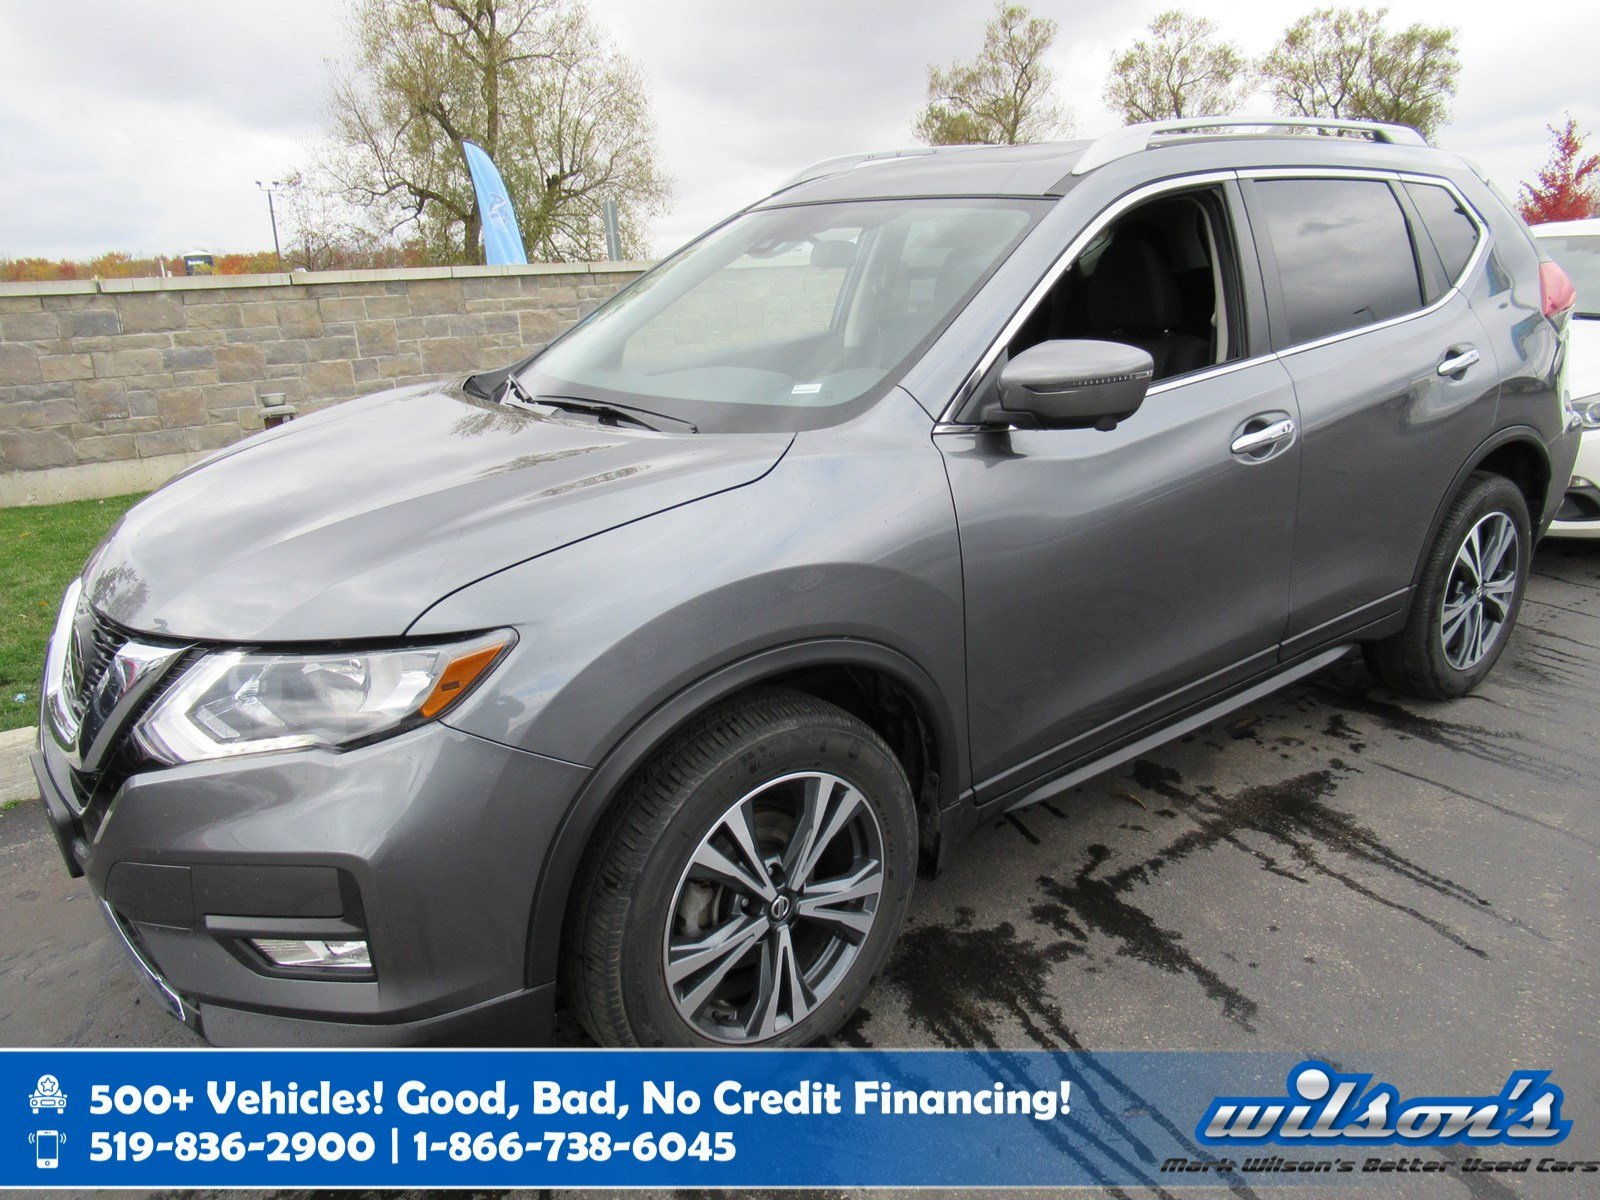 Certified Pre-Owned 2019 Nissan Rogue SV Tech AWD Used, Navigation, Sunroof, Heated Steering, Blind Spot Alert and more!